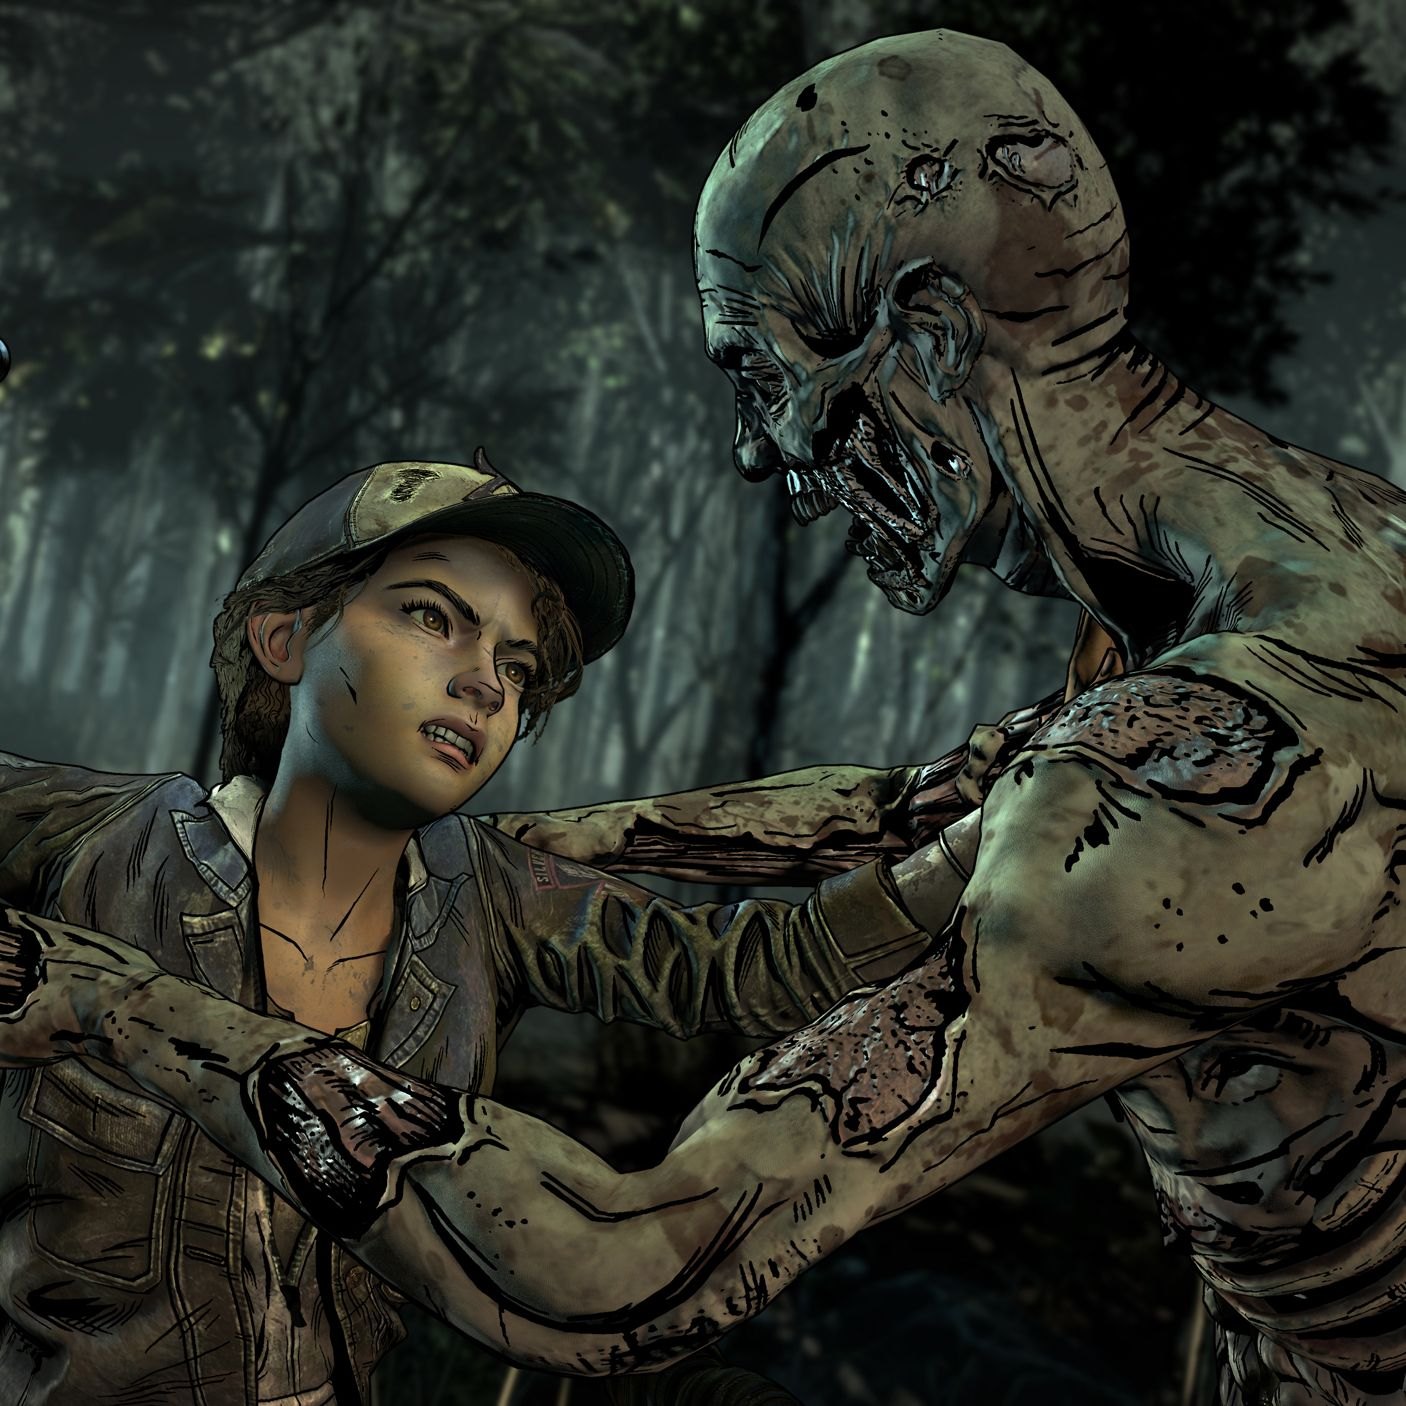 Pick up The Walking Dead: The Final Season Episode 4 for less today